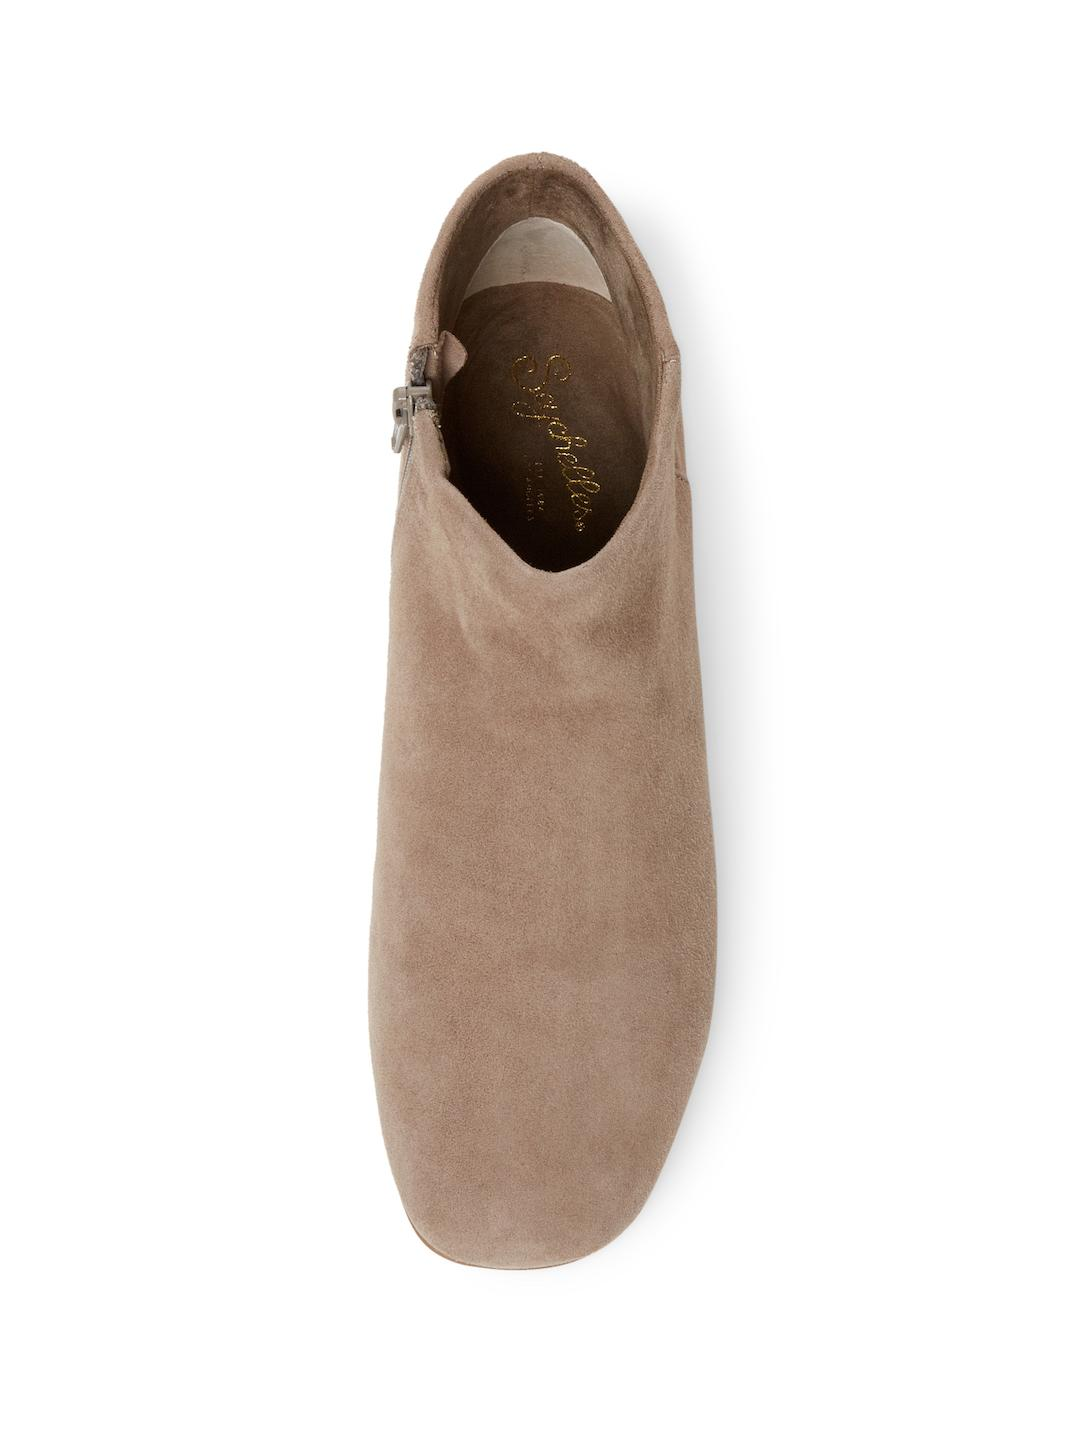 Seychelles Leather Fauna Low Heel Bootie in Taupe Suede (Brown)